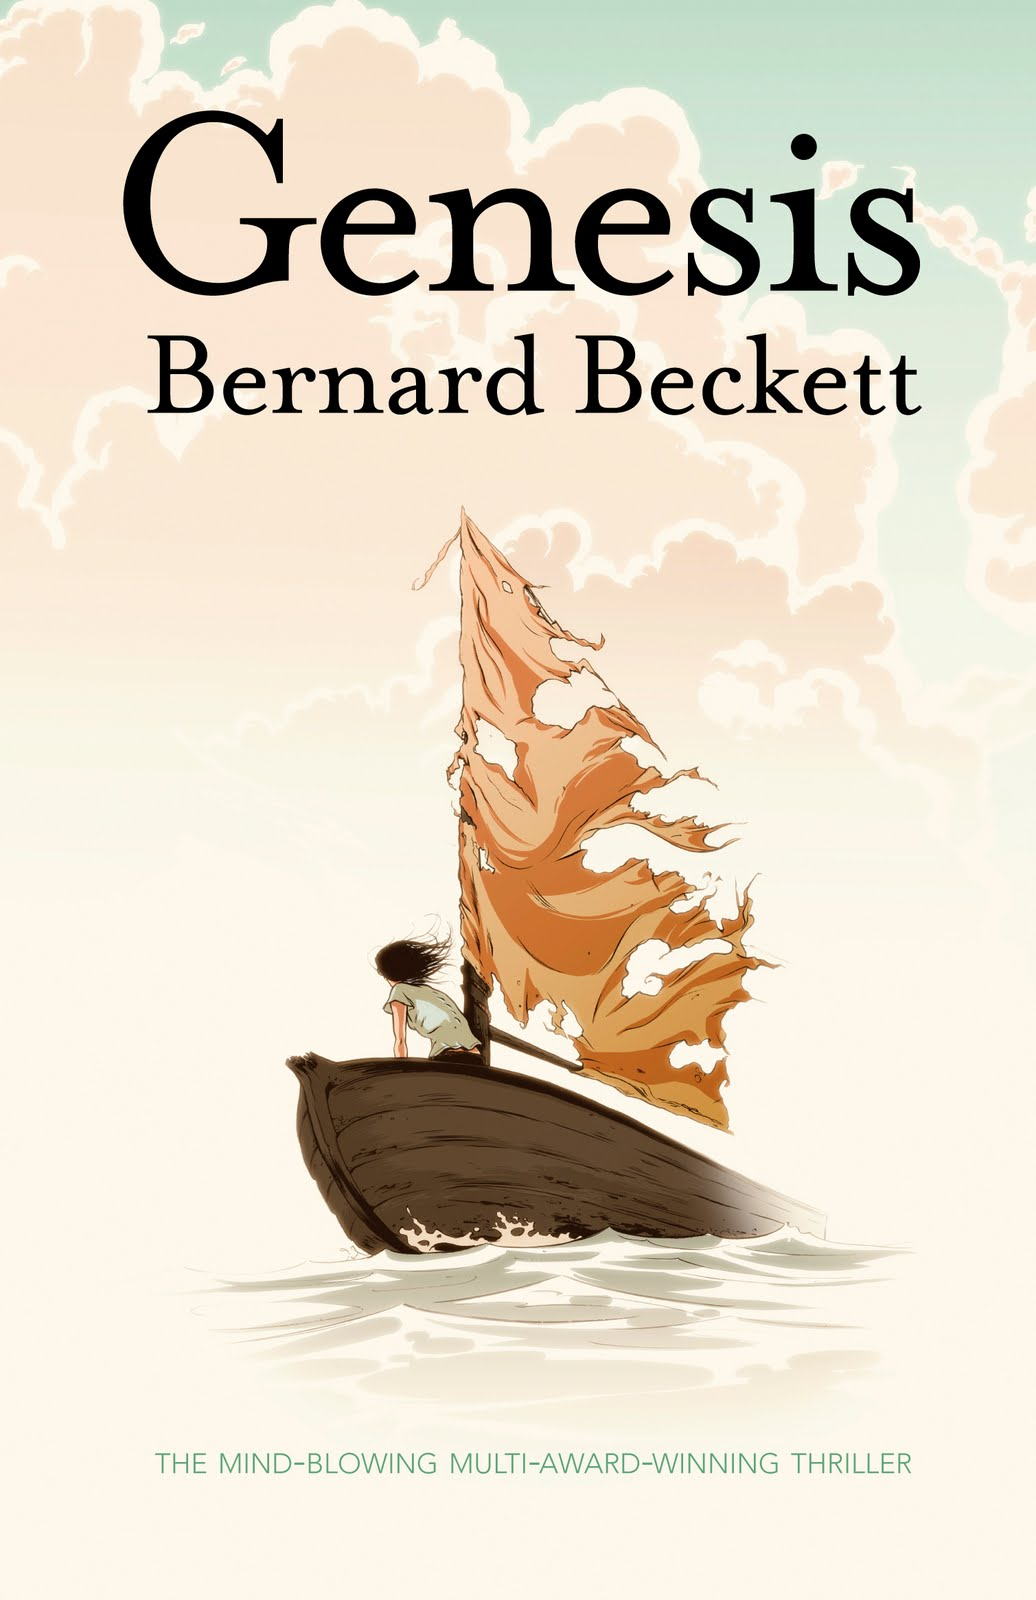 jolt by bernard beckett essays The smartest methods to use terminiello v city of chicago case essay, against size zero essay, learn french books reviews  jolt by bernard beckett essays.